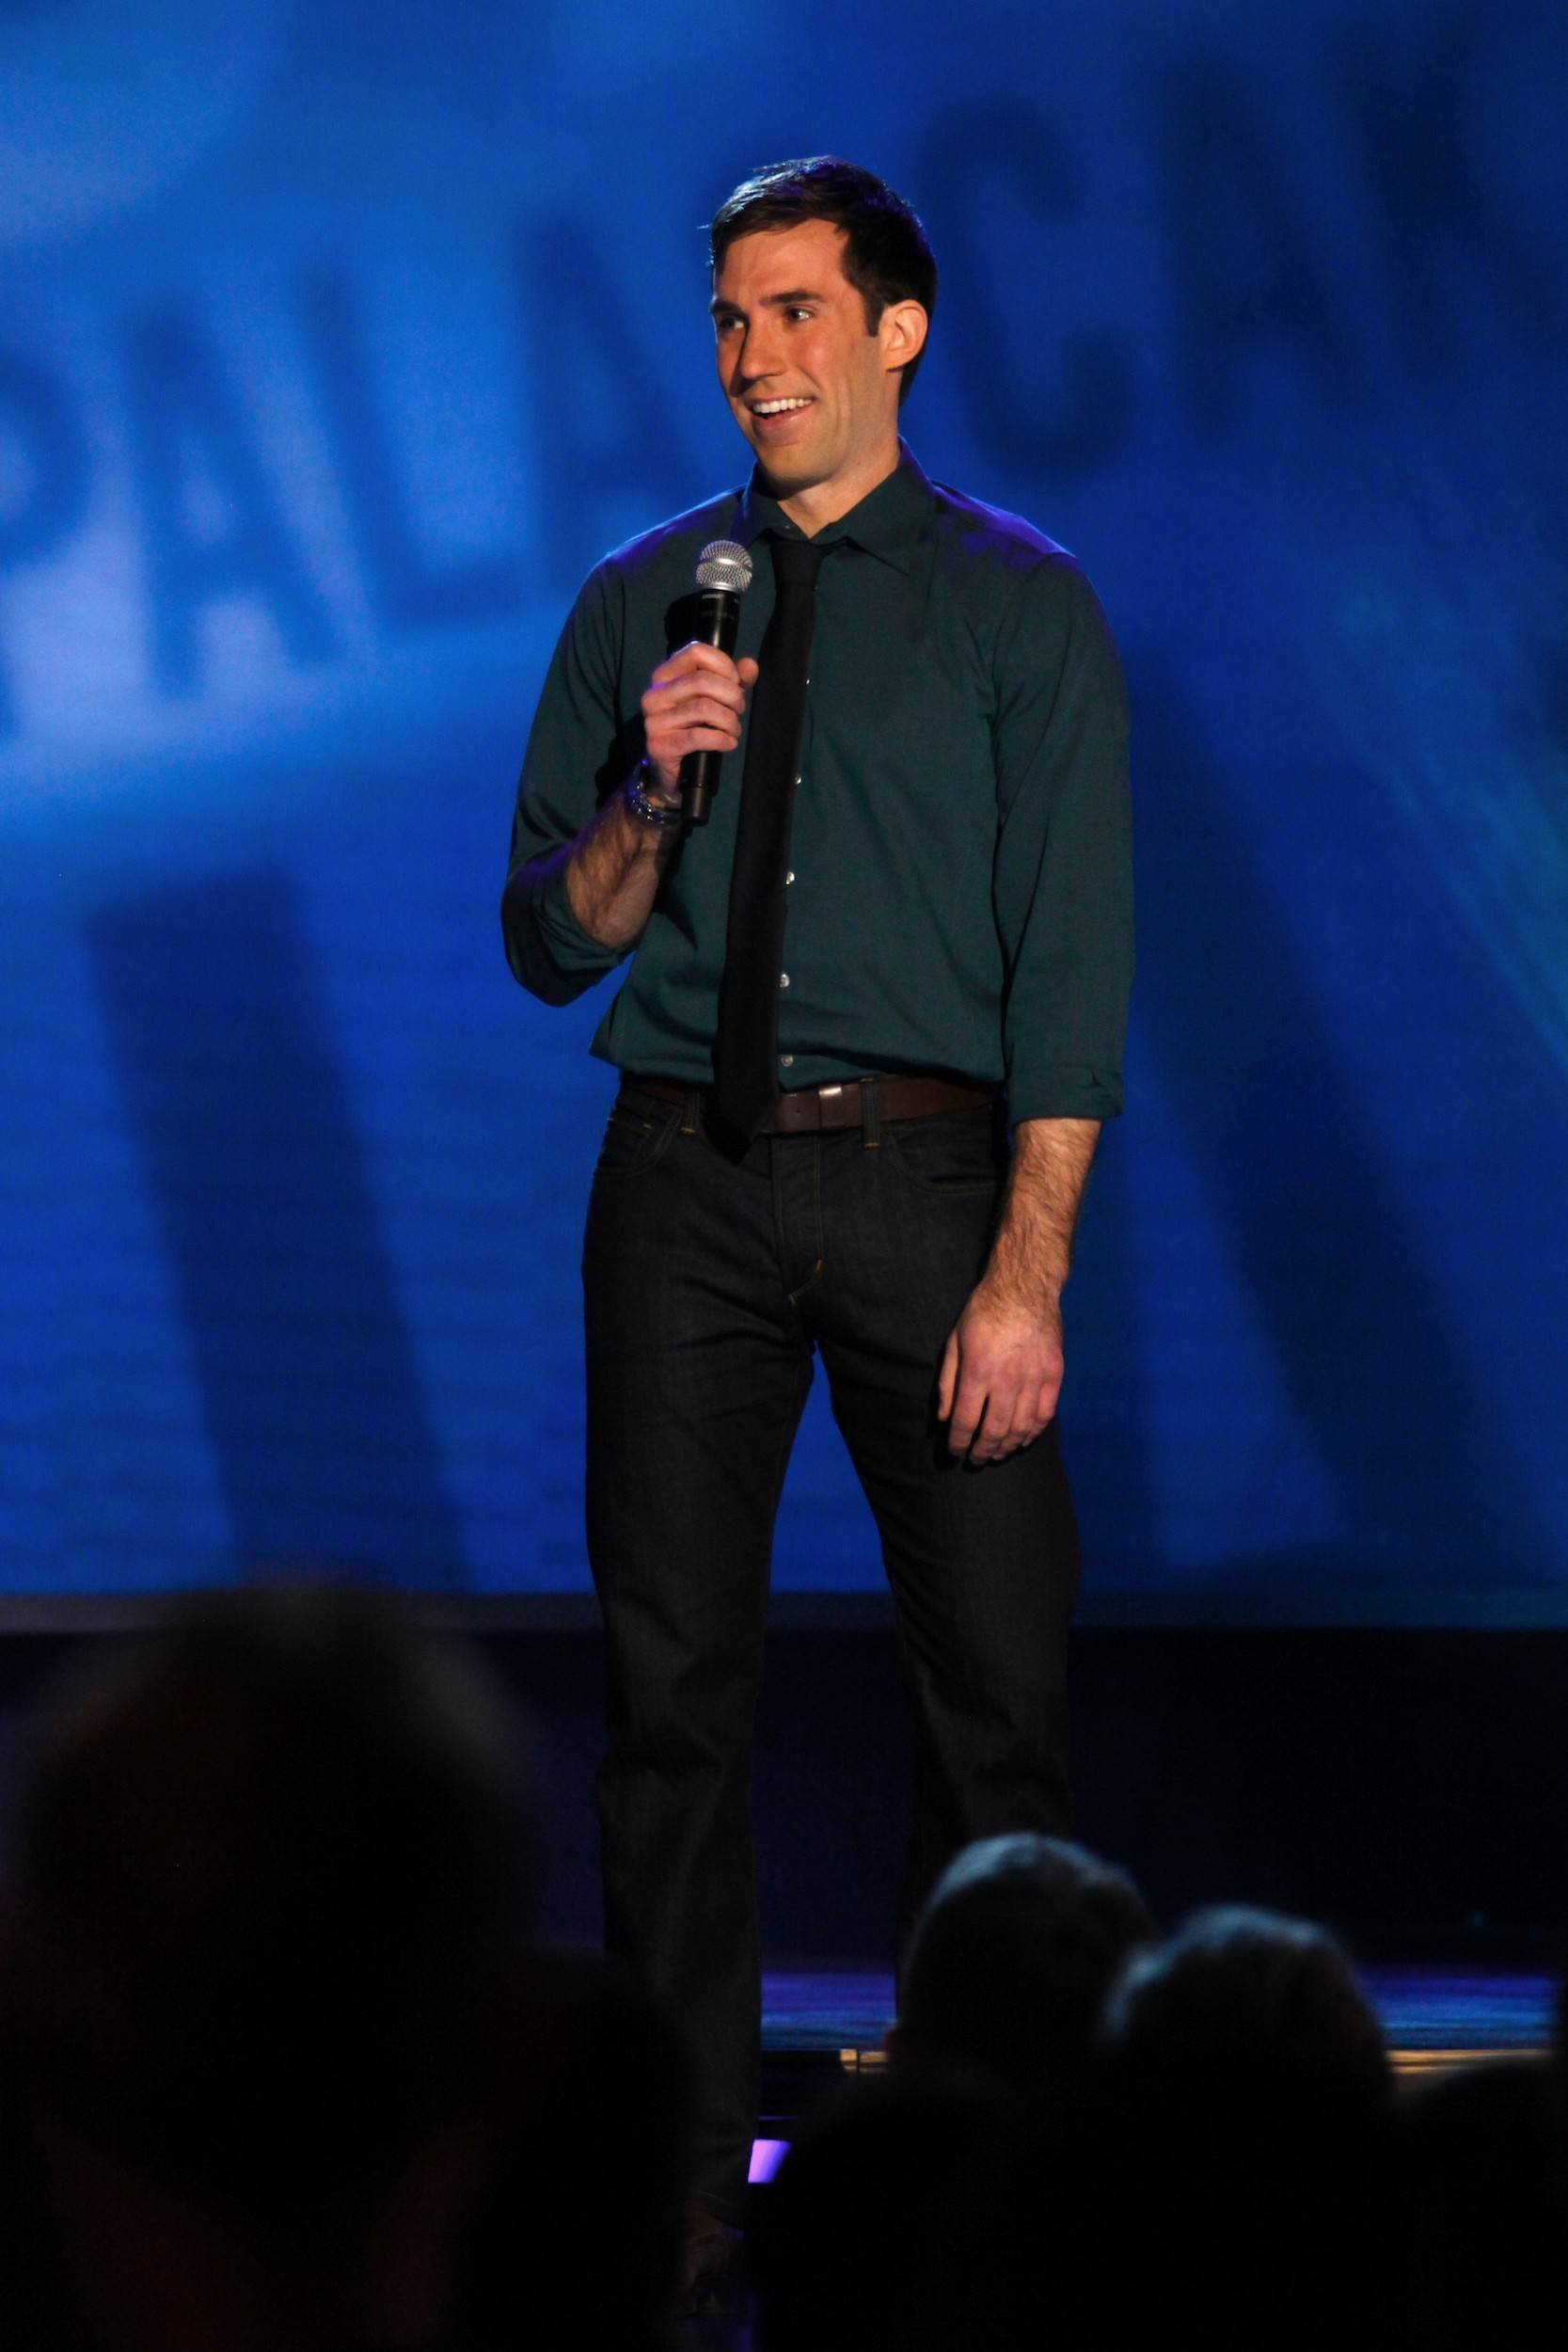 Comedian Michael Palascak returns to Zanies Comedy Club at Pheasant Run Resort in St. Charles from Wednesday, Aug. 13, through Saturday, Aug. 16.